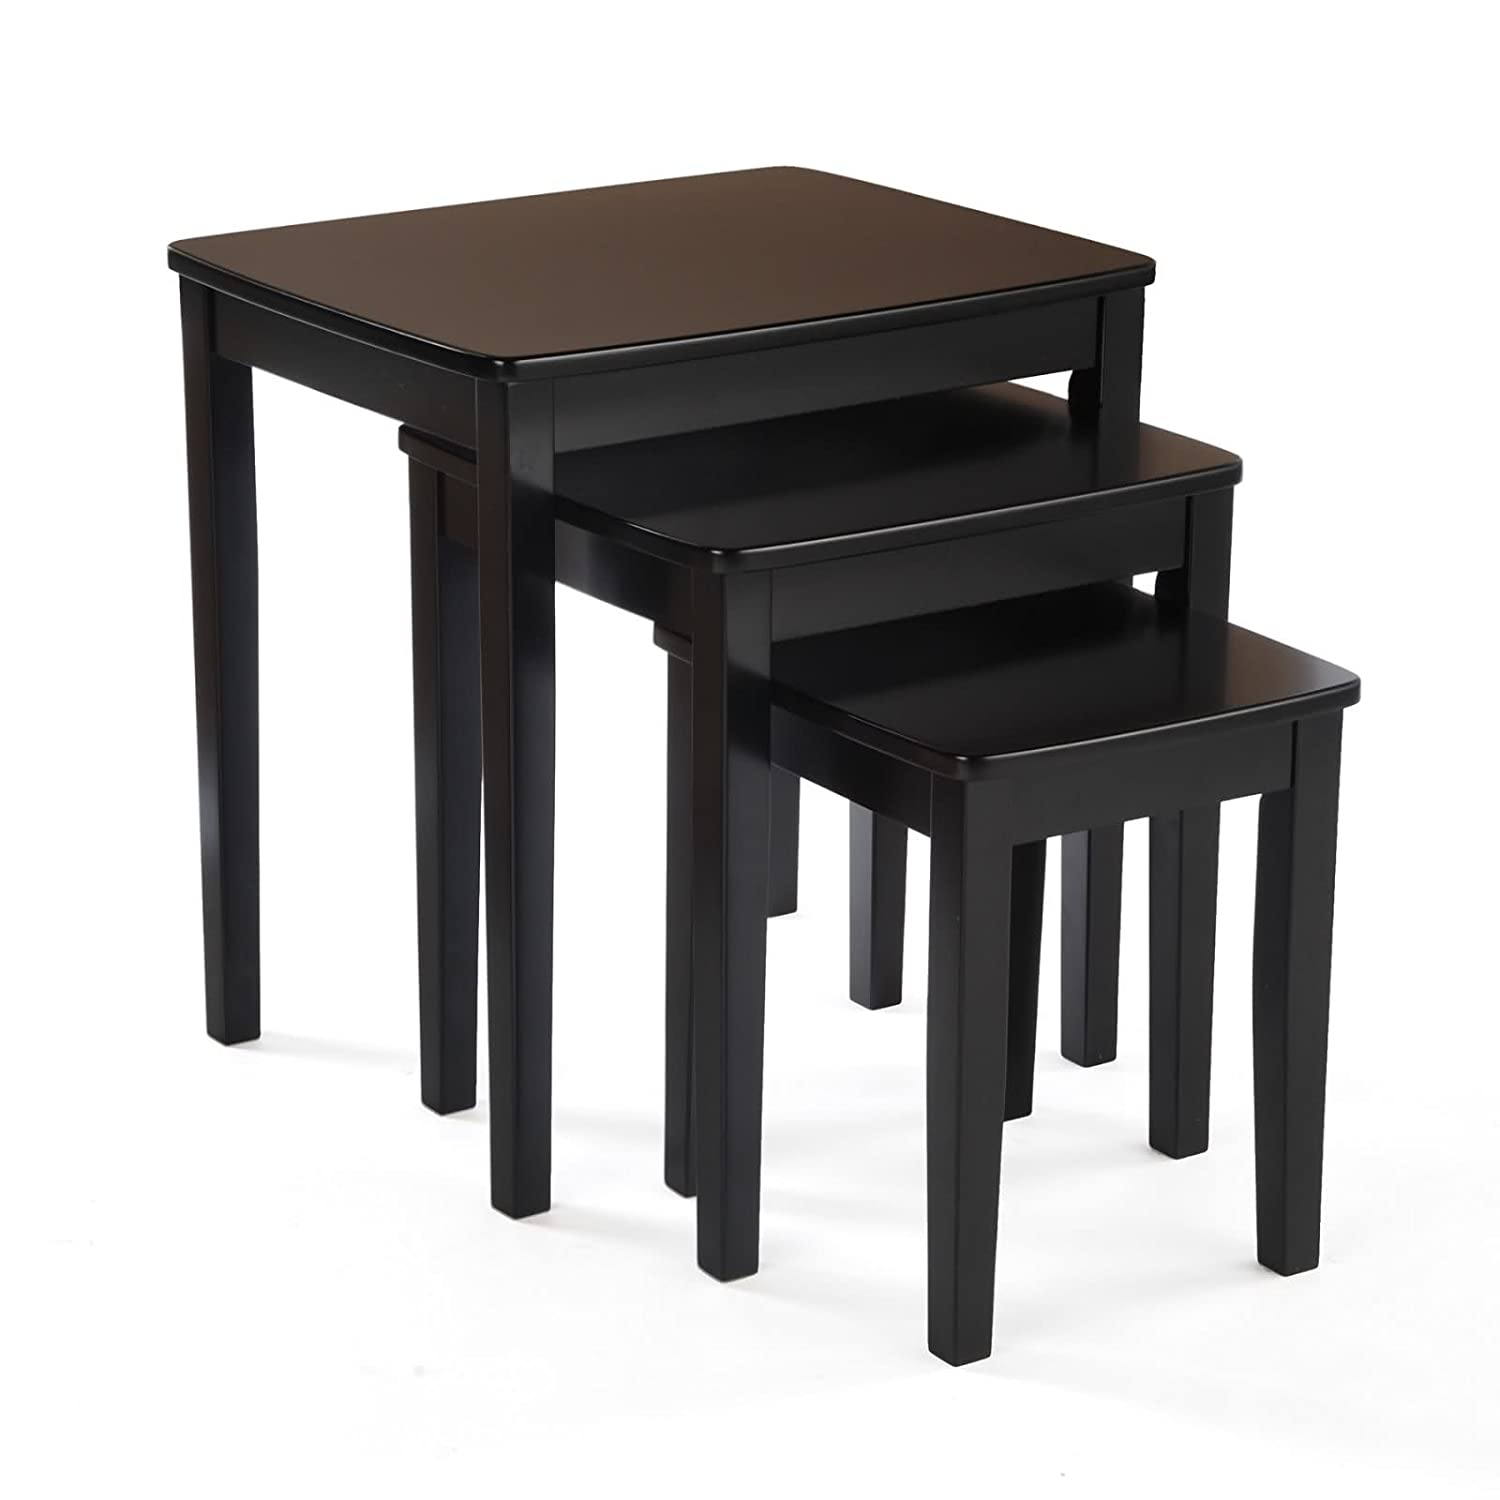 Tanner Nesting Tables Coaster Company Black Tempered Glass And Metal Nesting Tables Set Of 2